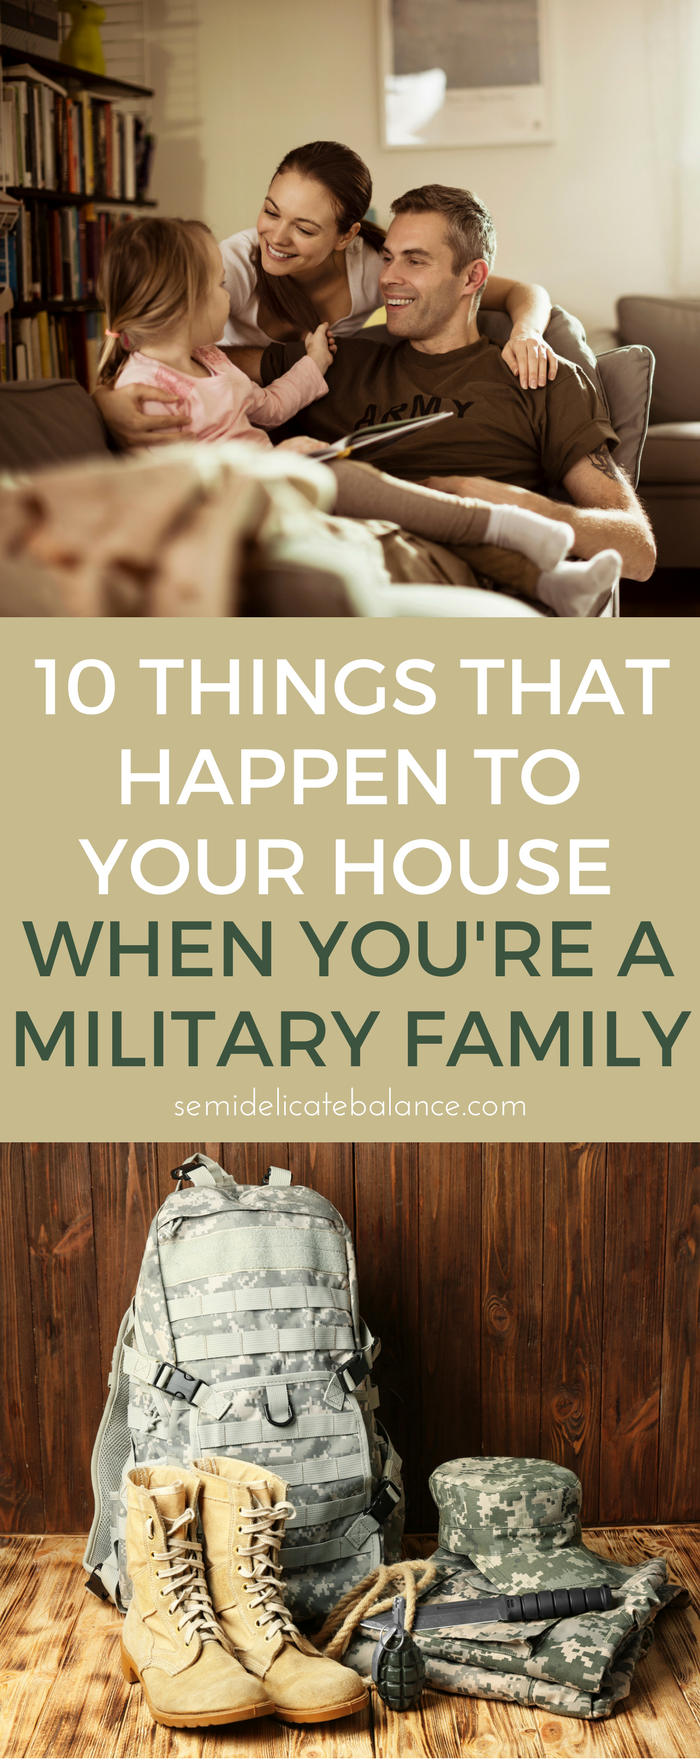 10 Things That Happen to Your House When You're a Military Family